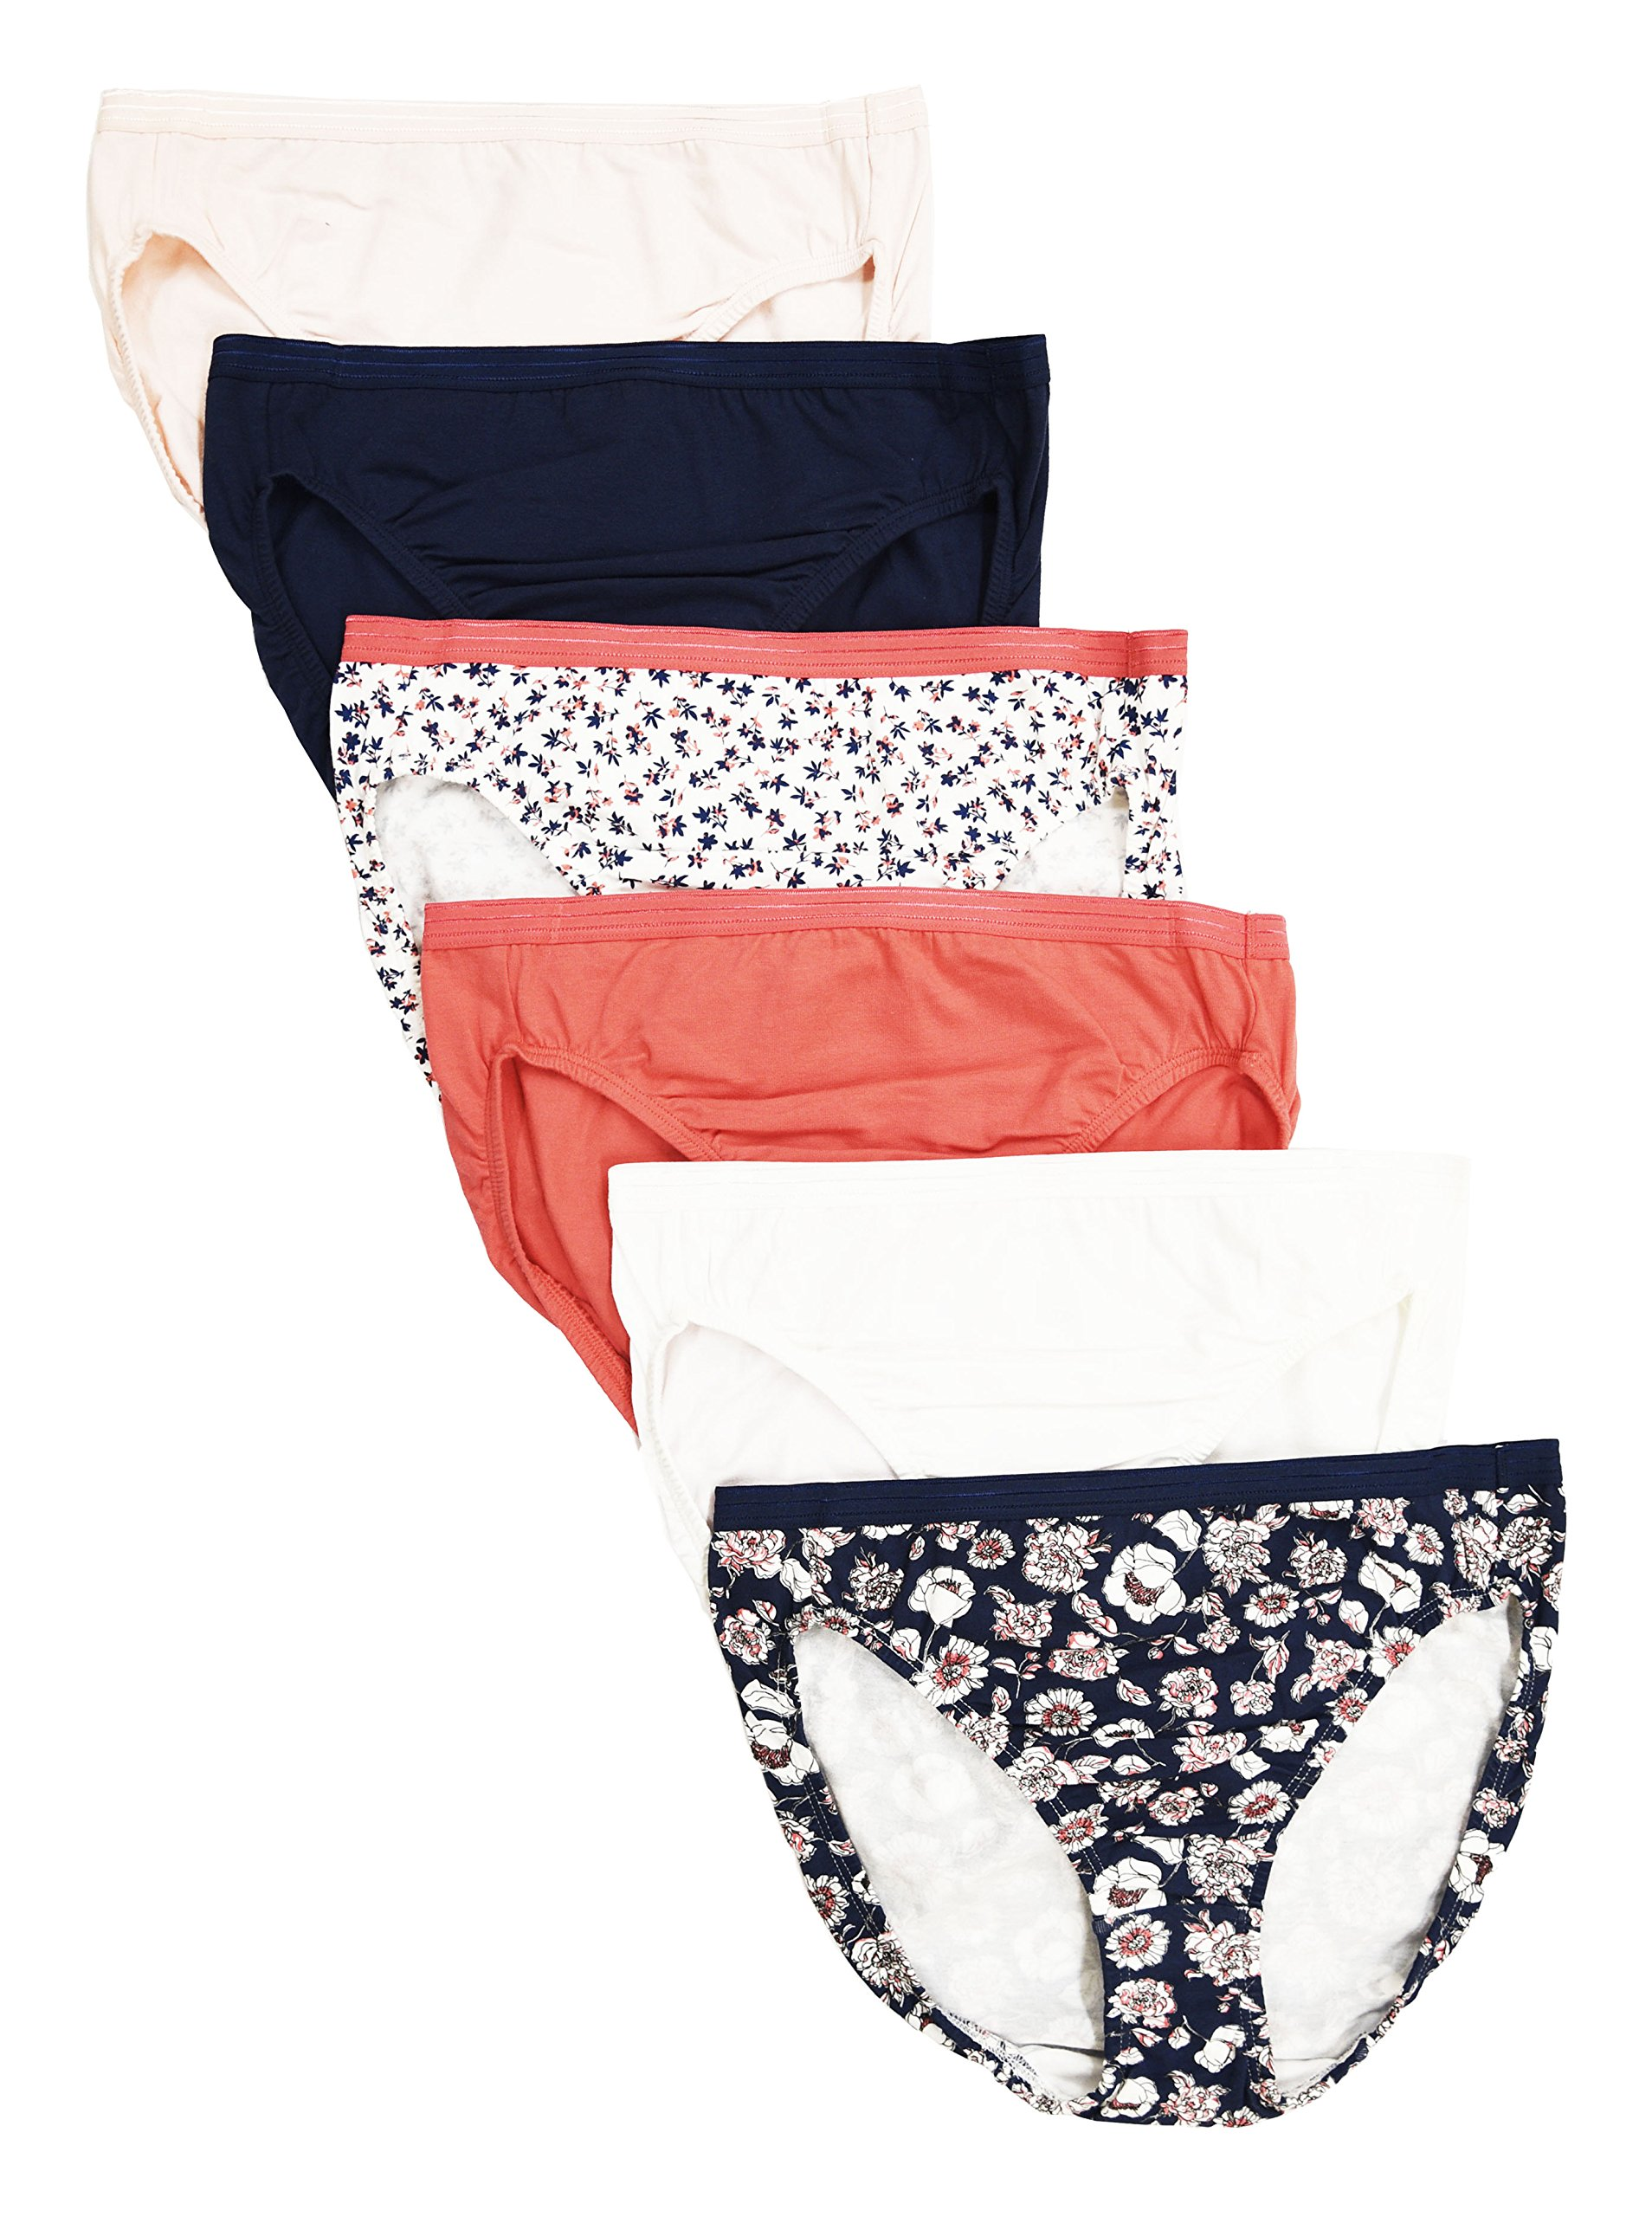 CHEROKEE Women's 6-Pack Cotton Stretch Hi-Cut Hipster Panties Underwear, Solid/Floral Prints